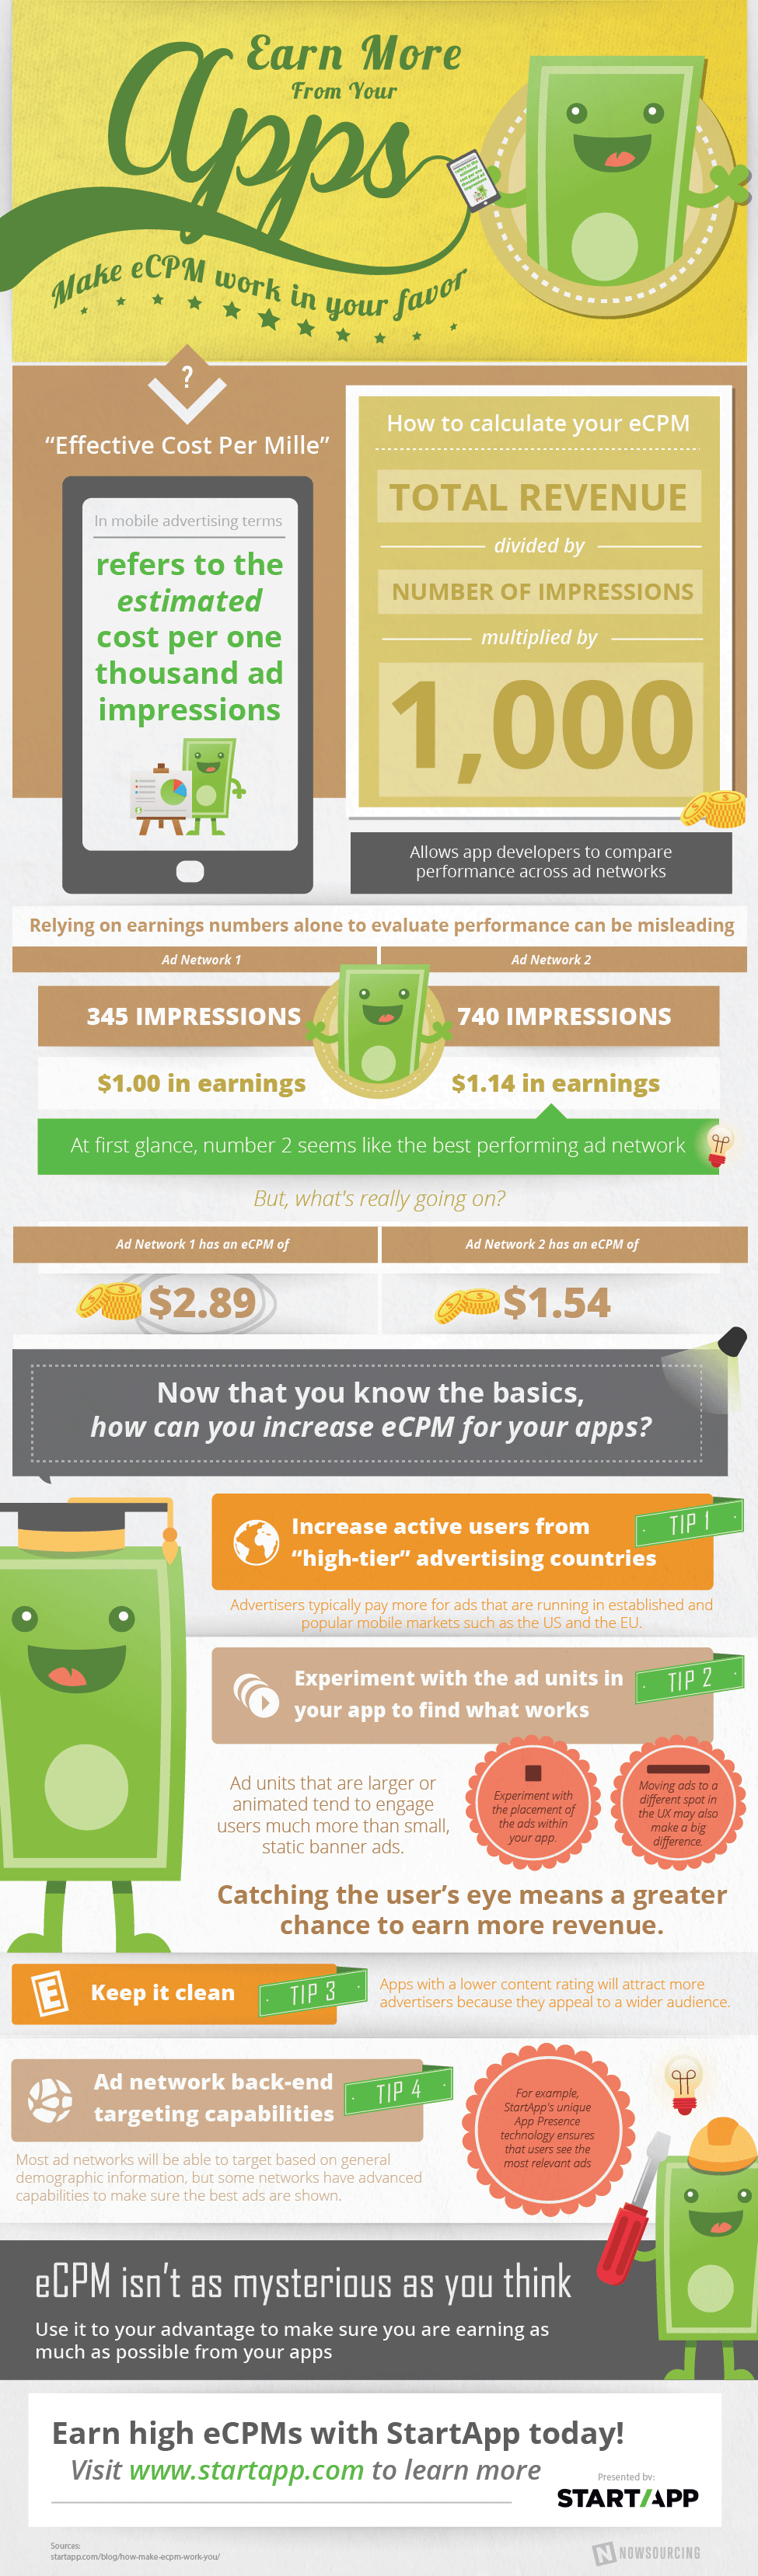 Earn More From Your Apps